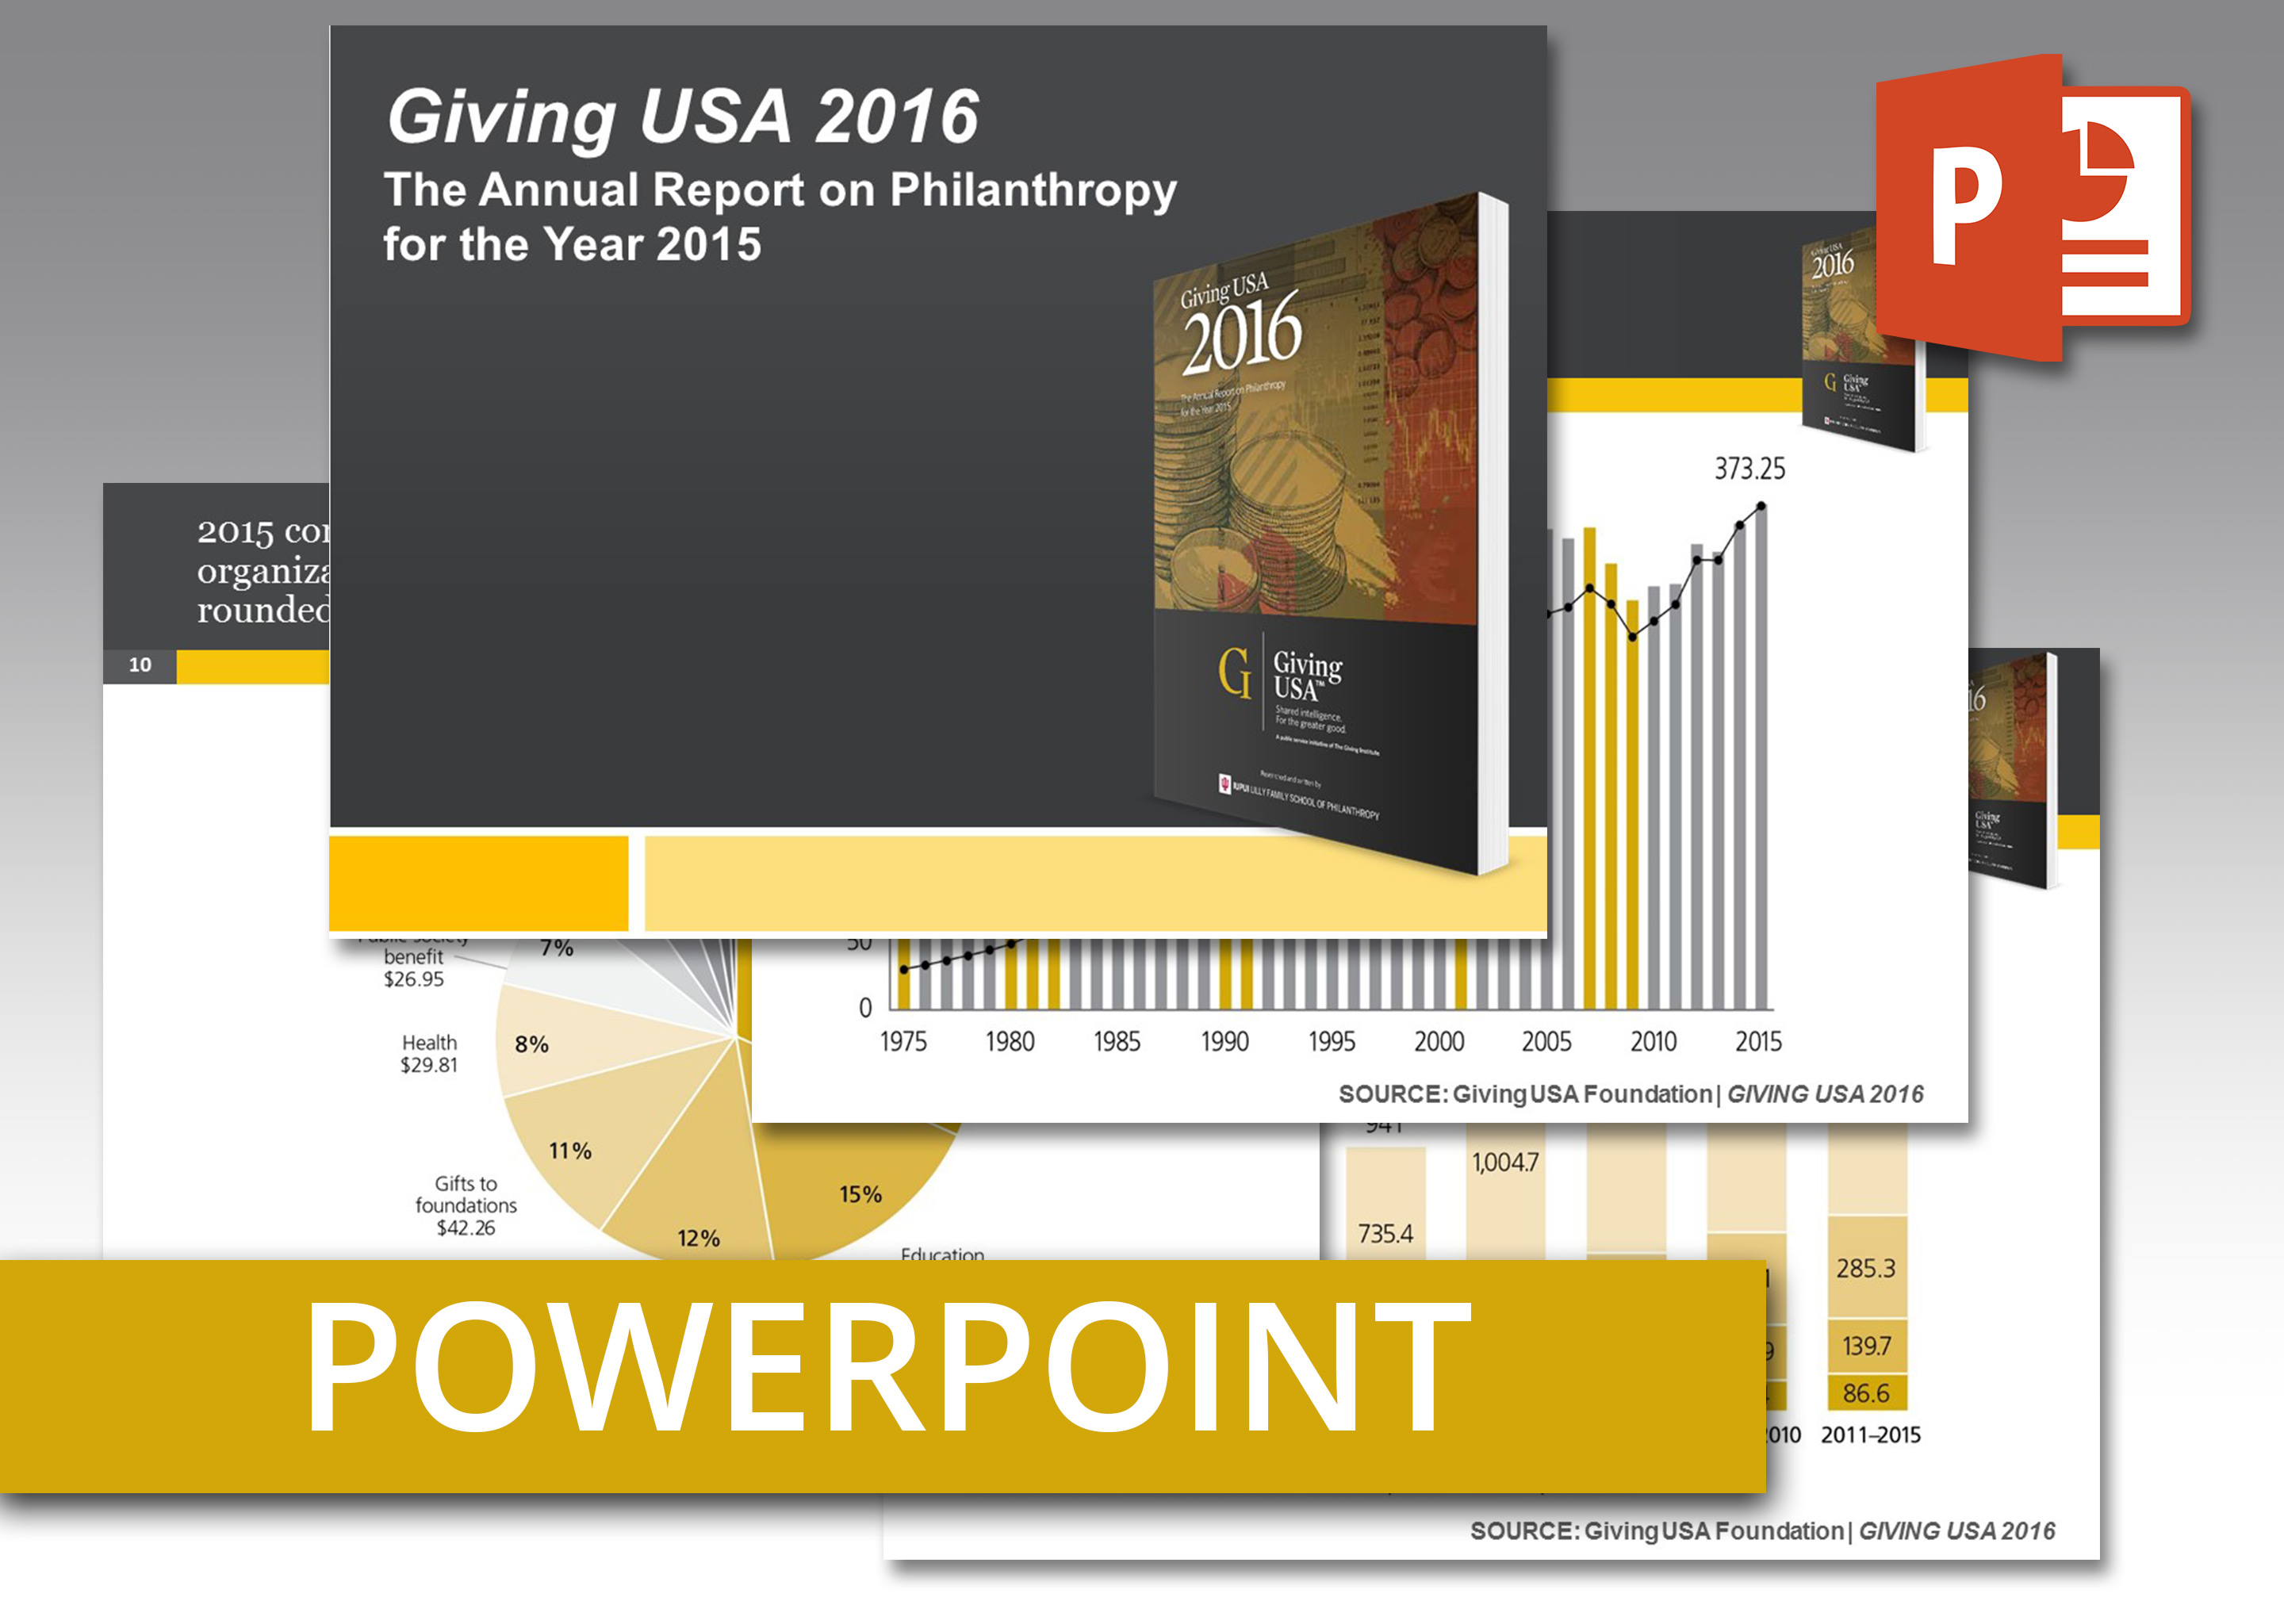 Coolmathgamesus  Surprising Giving Usa  Powerpoint An Easytouse Presentation Of Report  With Inspiring Giving Usa  Powerpoint An Easytouse Presentation Of Report Findings Including Talking Points With Amazing Photo Powerpoint Template Also How To Make A Creative Powerpoint Presentation In Addition Free Bible Powerpoint Templates And New Microsoft Powerpoint As Well As Powerpoint Slide Design Tips Additionally Powerpoint  Pdf From Givingusaorg With Coolmathgamesus  Inspiring Giving Usa  Powerpoint An Easytouse Presentation Of Report  With Amazing Giving Usa  Powerpoint An Easytouse Presentation Of Report Findings Including Talking Points And Surprising Photo Powerpoint Template Also How To Make A Creative Powerpoint Presentation In Addition Free Bible Powerpoint Templates From Givingusaorg